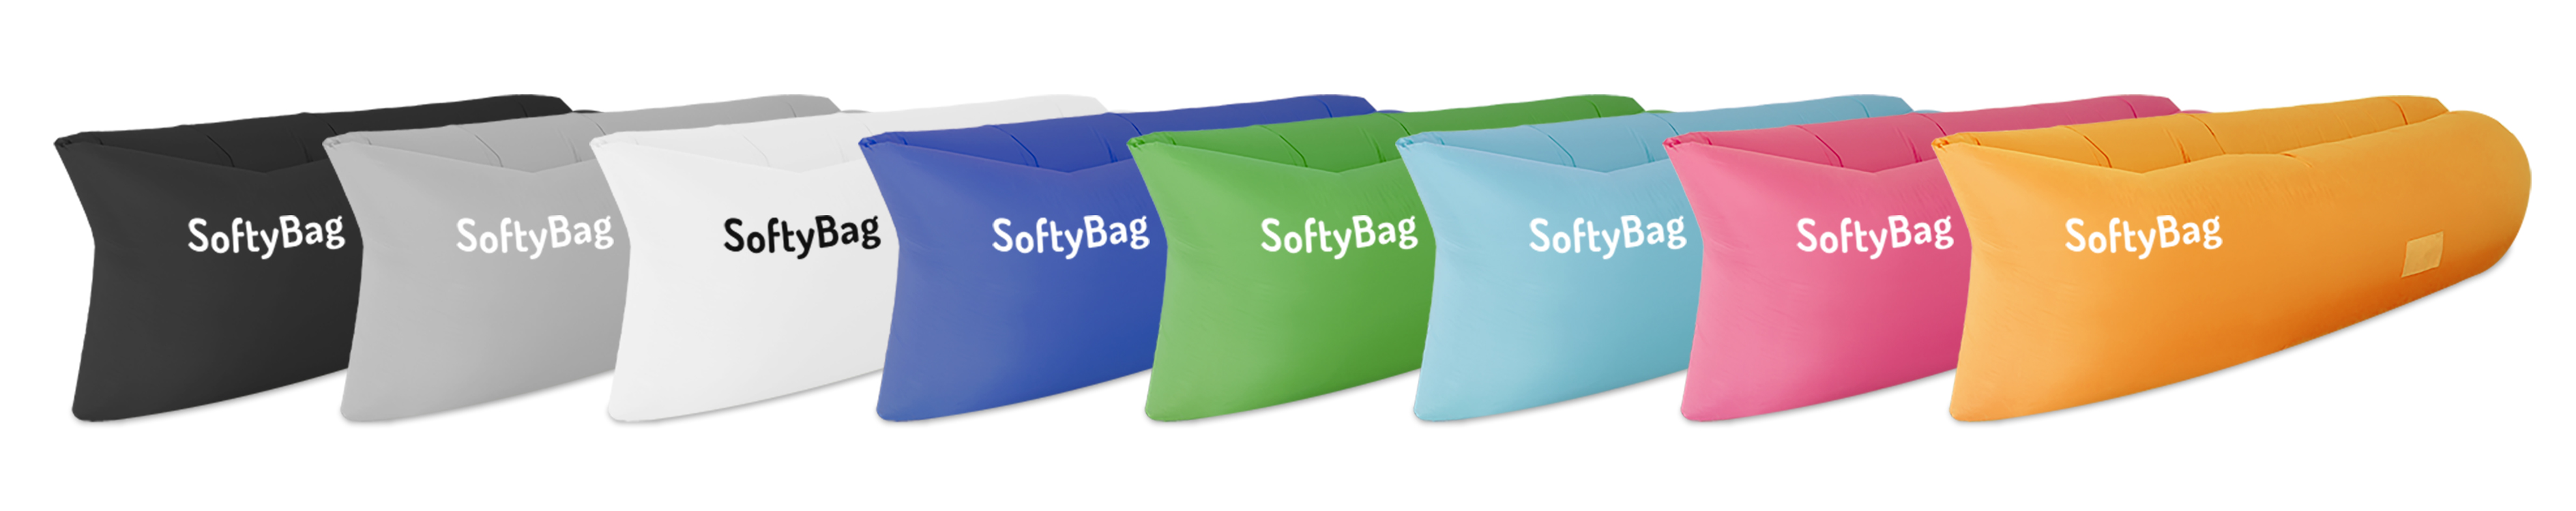 softybags2